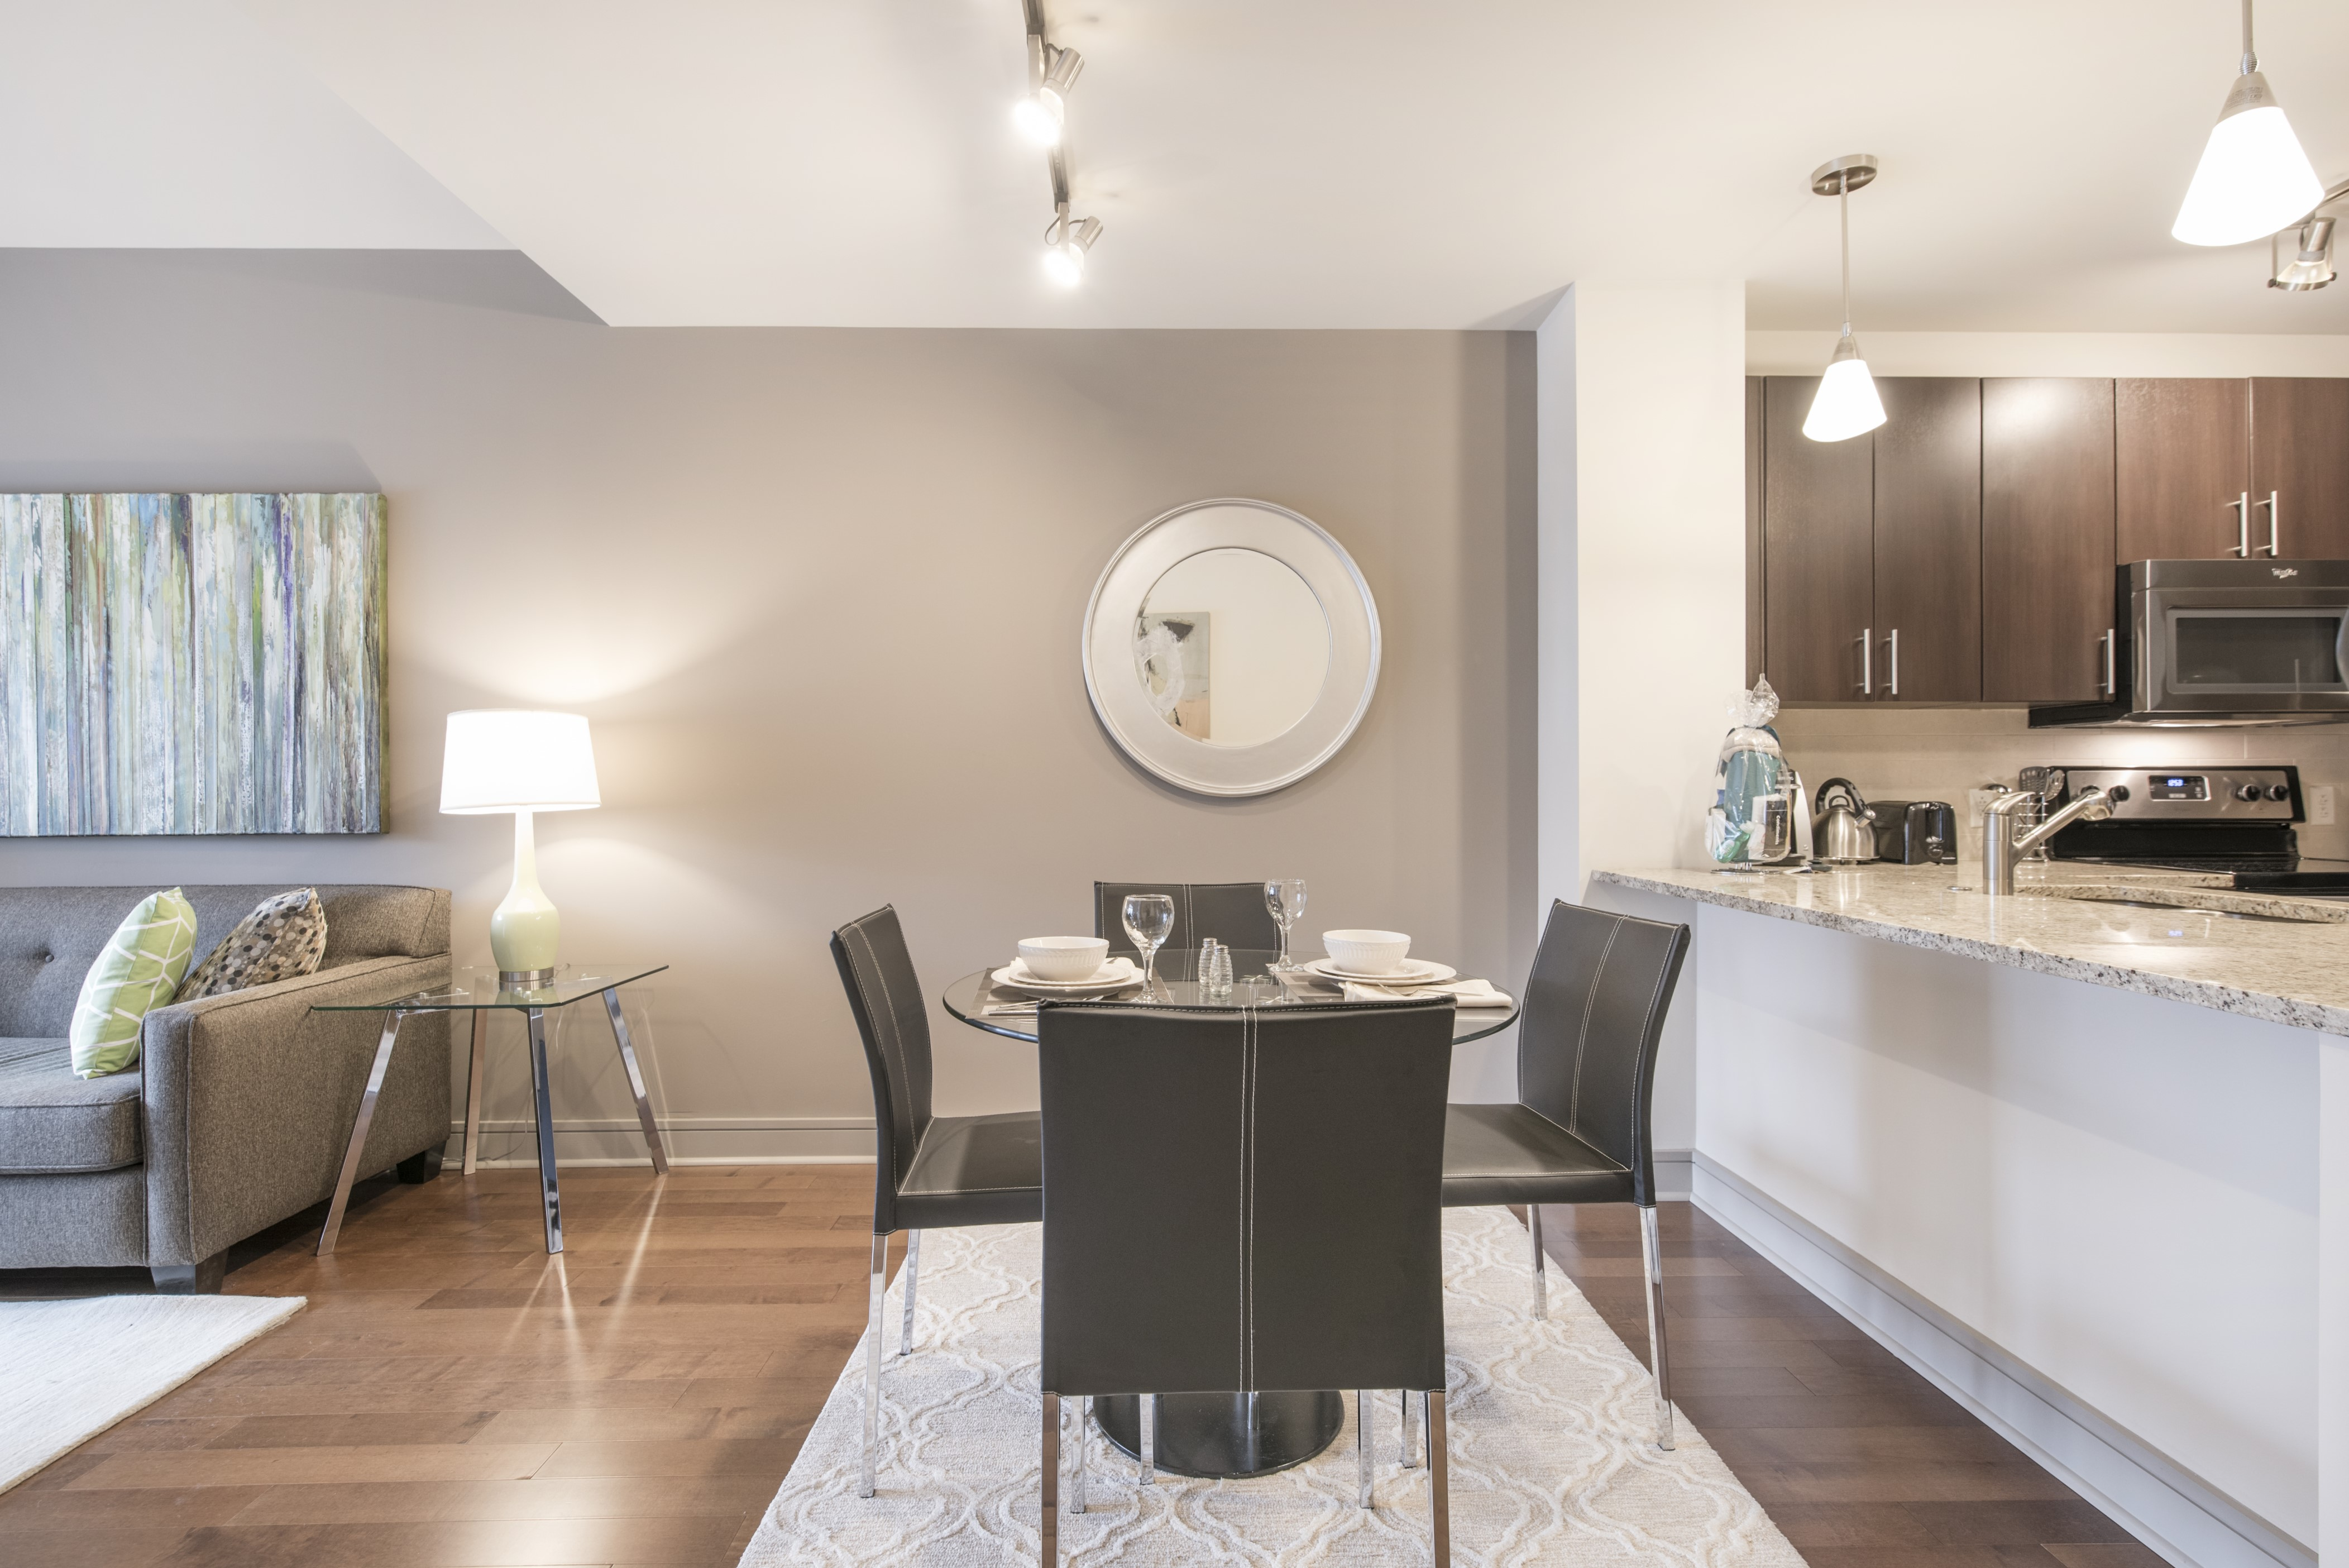 image 4 furnished 1 bedroom Apartment for rent in Waterfront, Boston Area